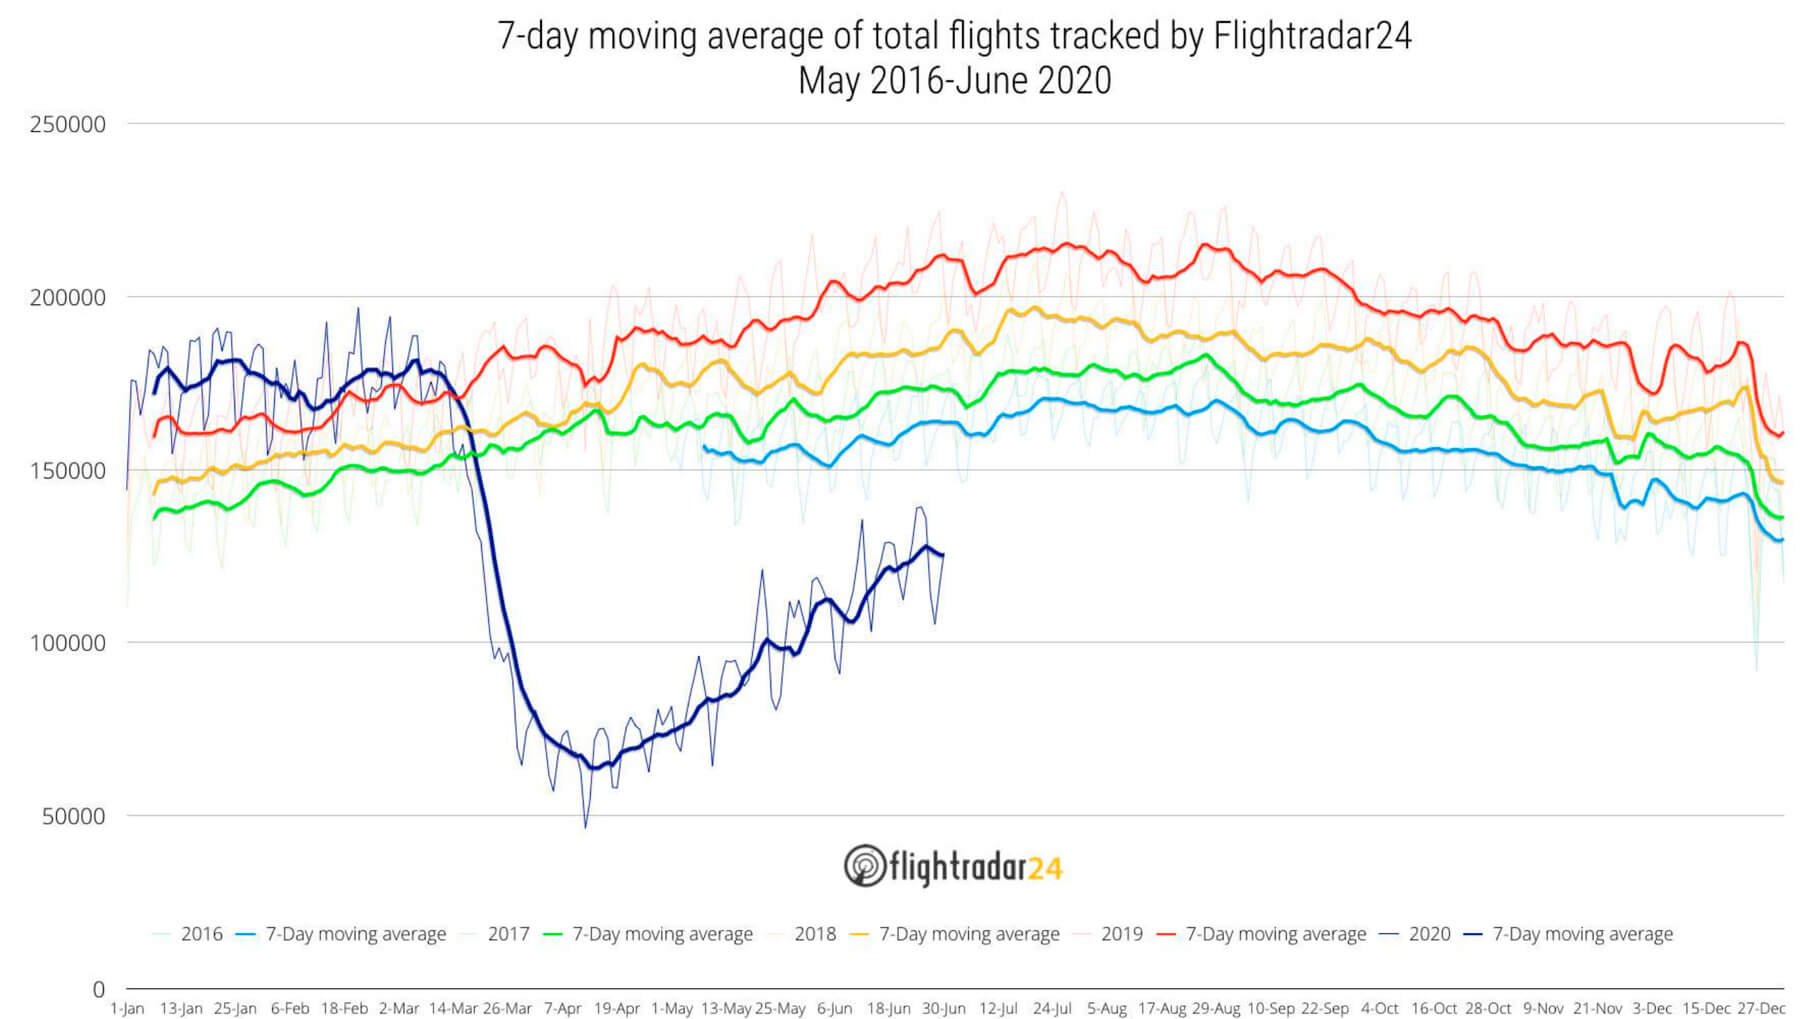 Commercial flight growth continues to lag total flights